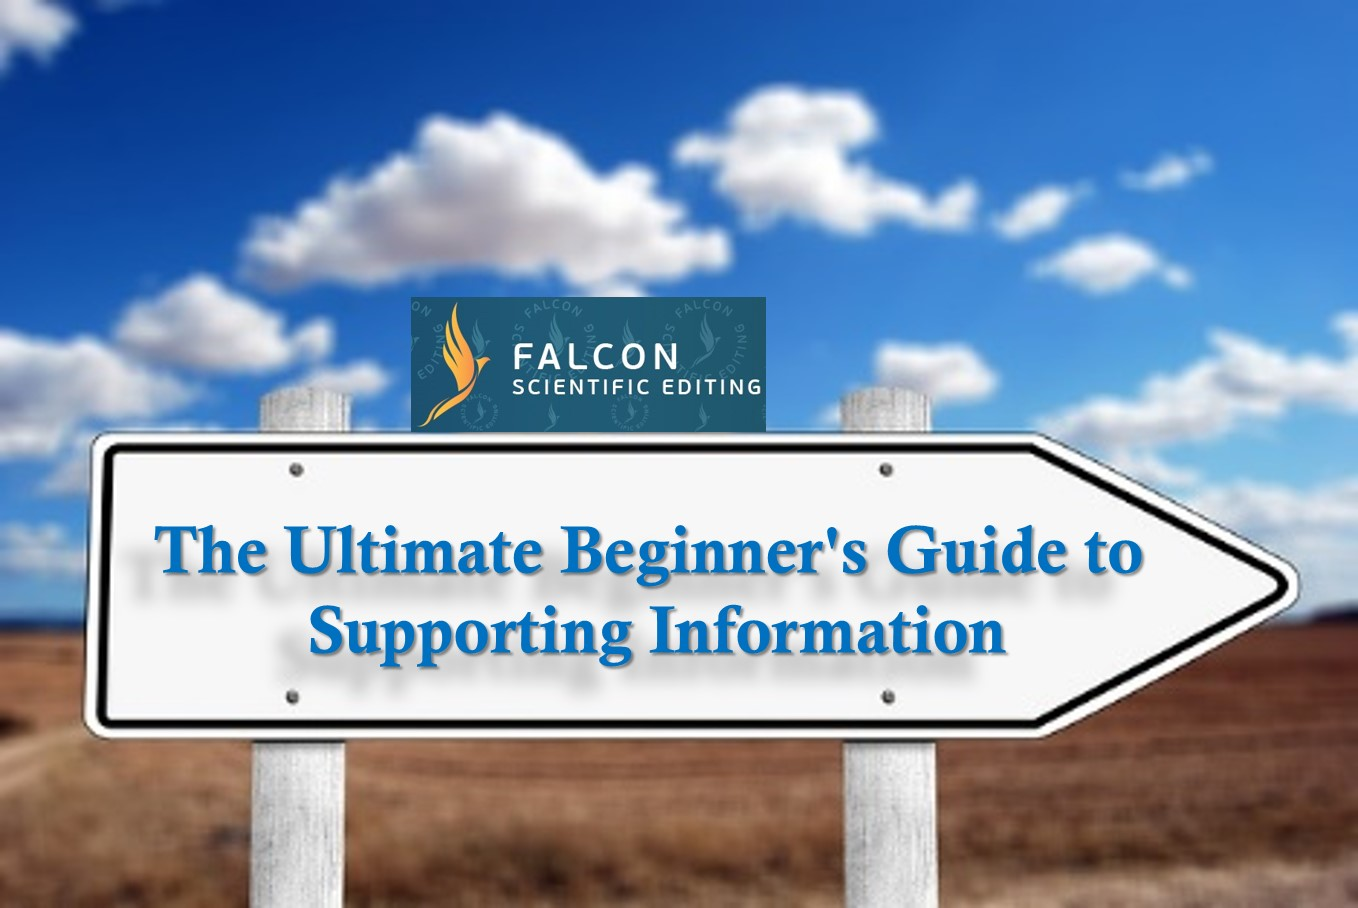 The Ultimate Beginner's Guide to Supporting Information for Scientific Articles